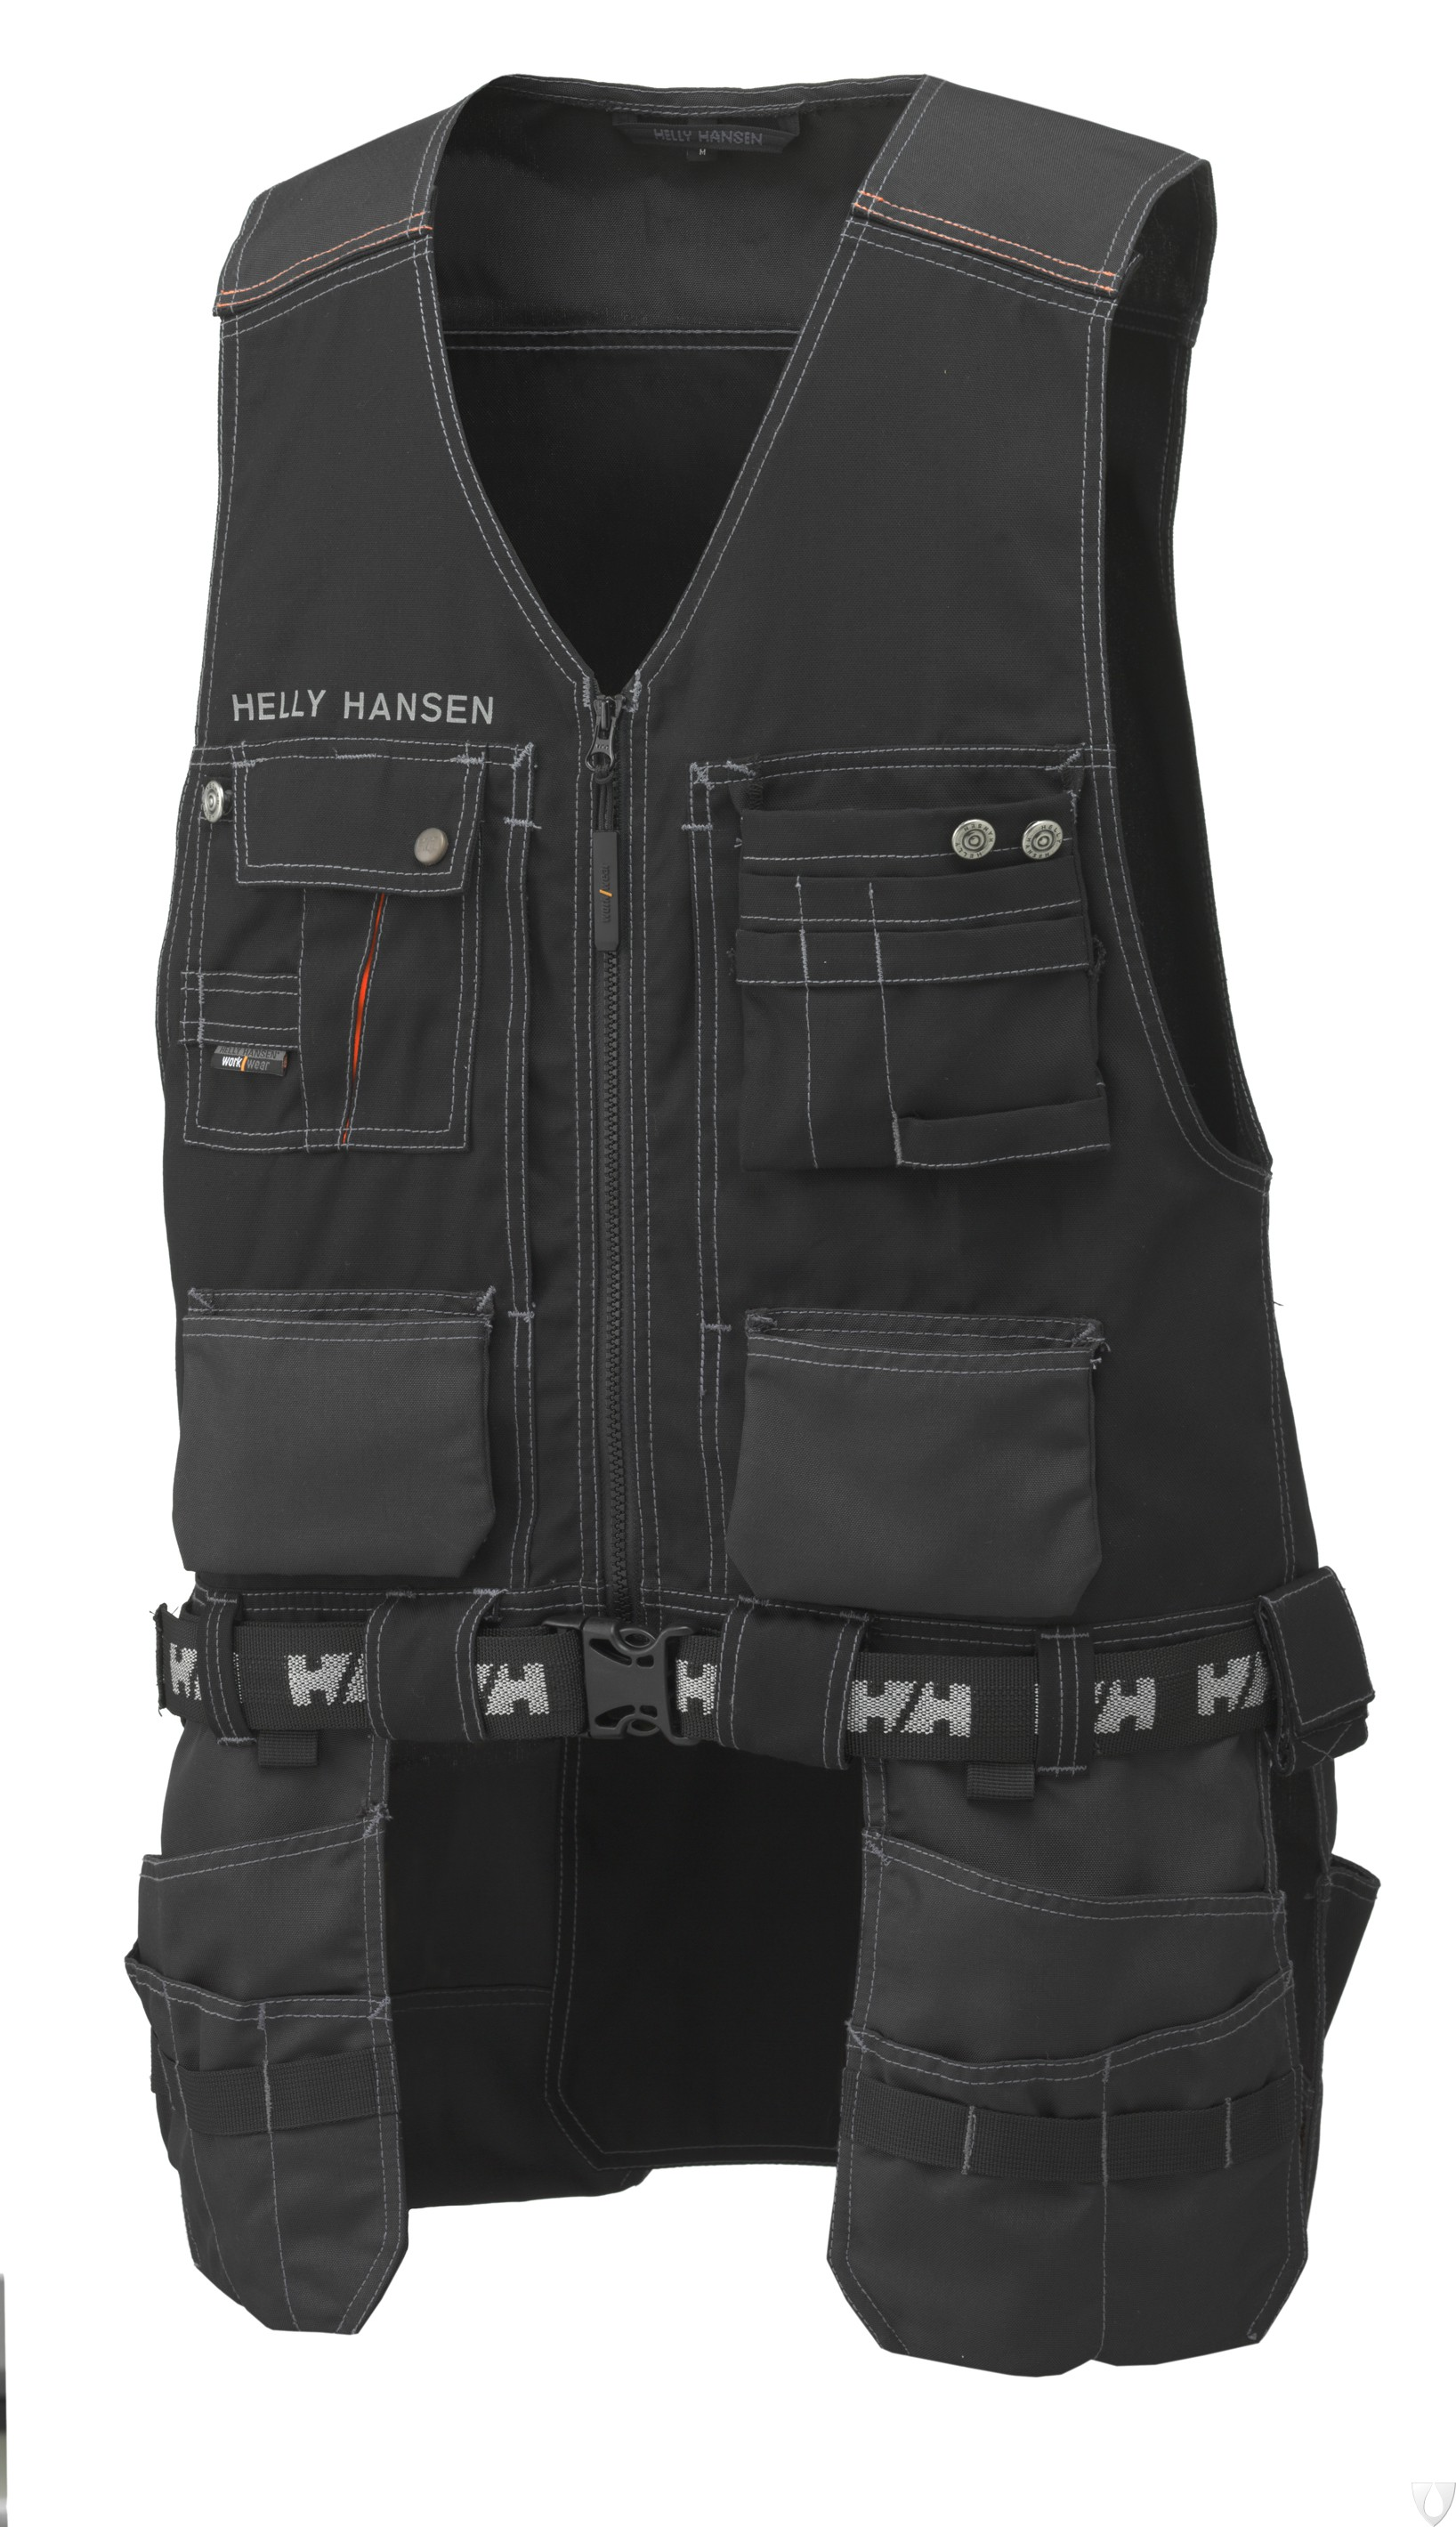 Helly Hansen Chelsea Construction Vest 76341